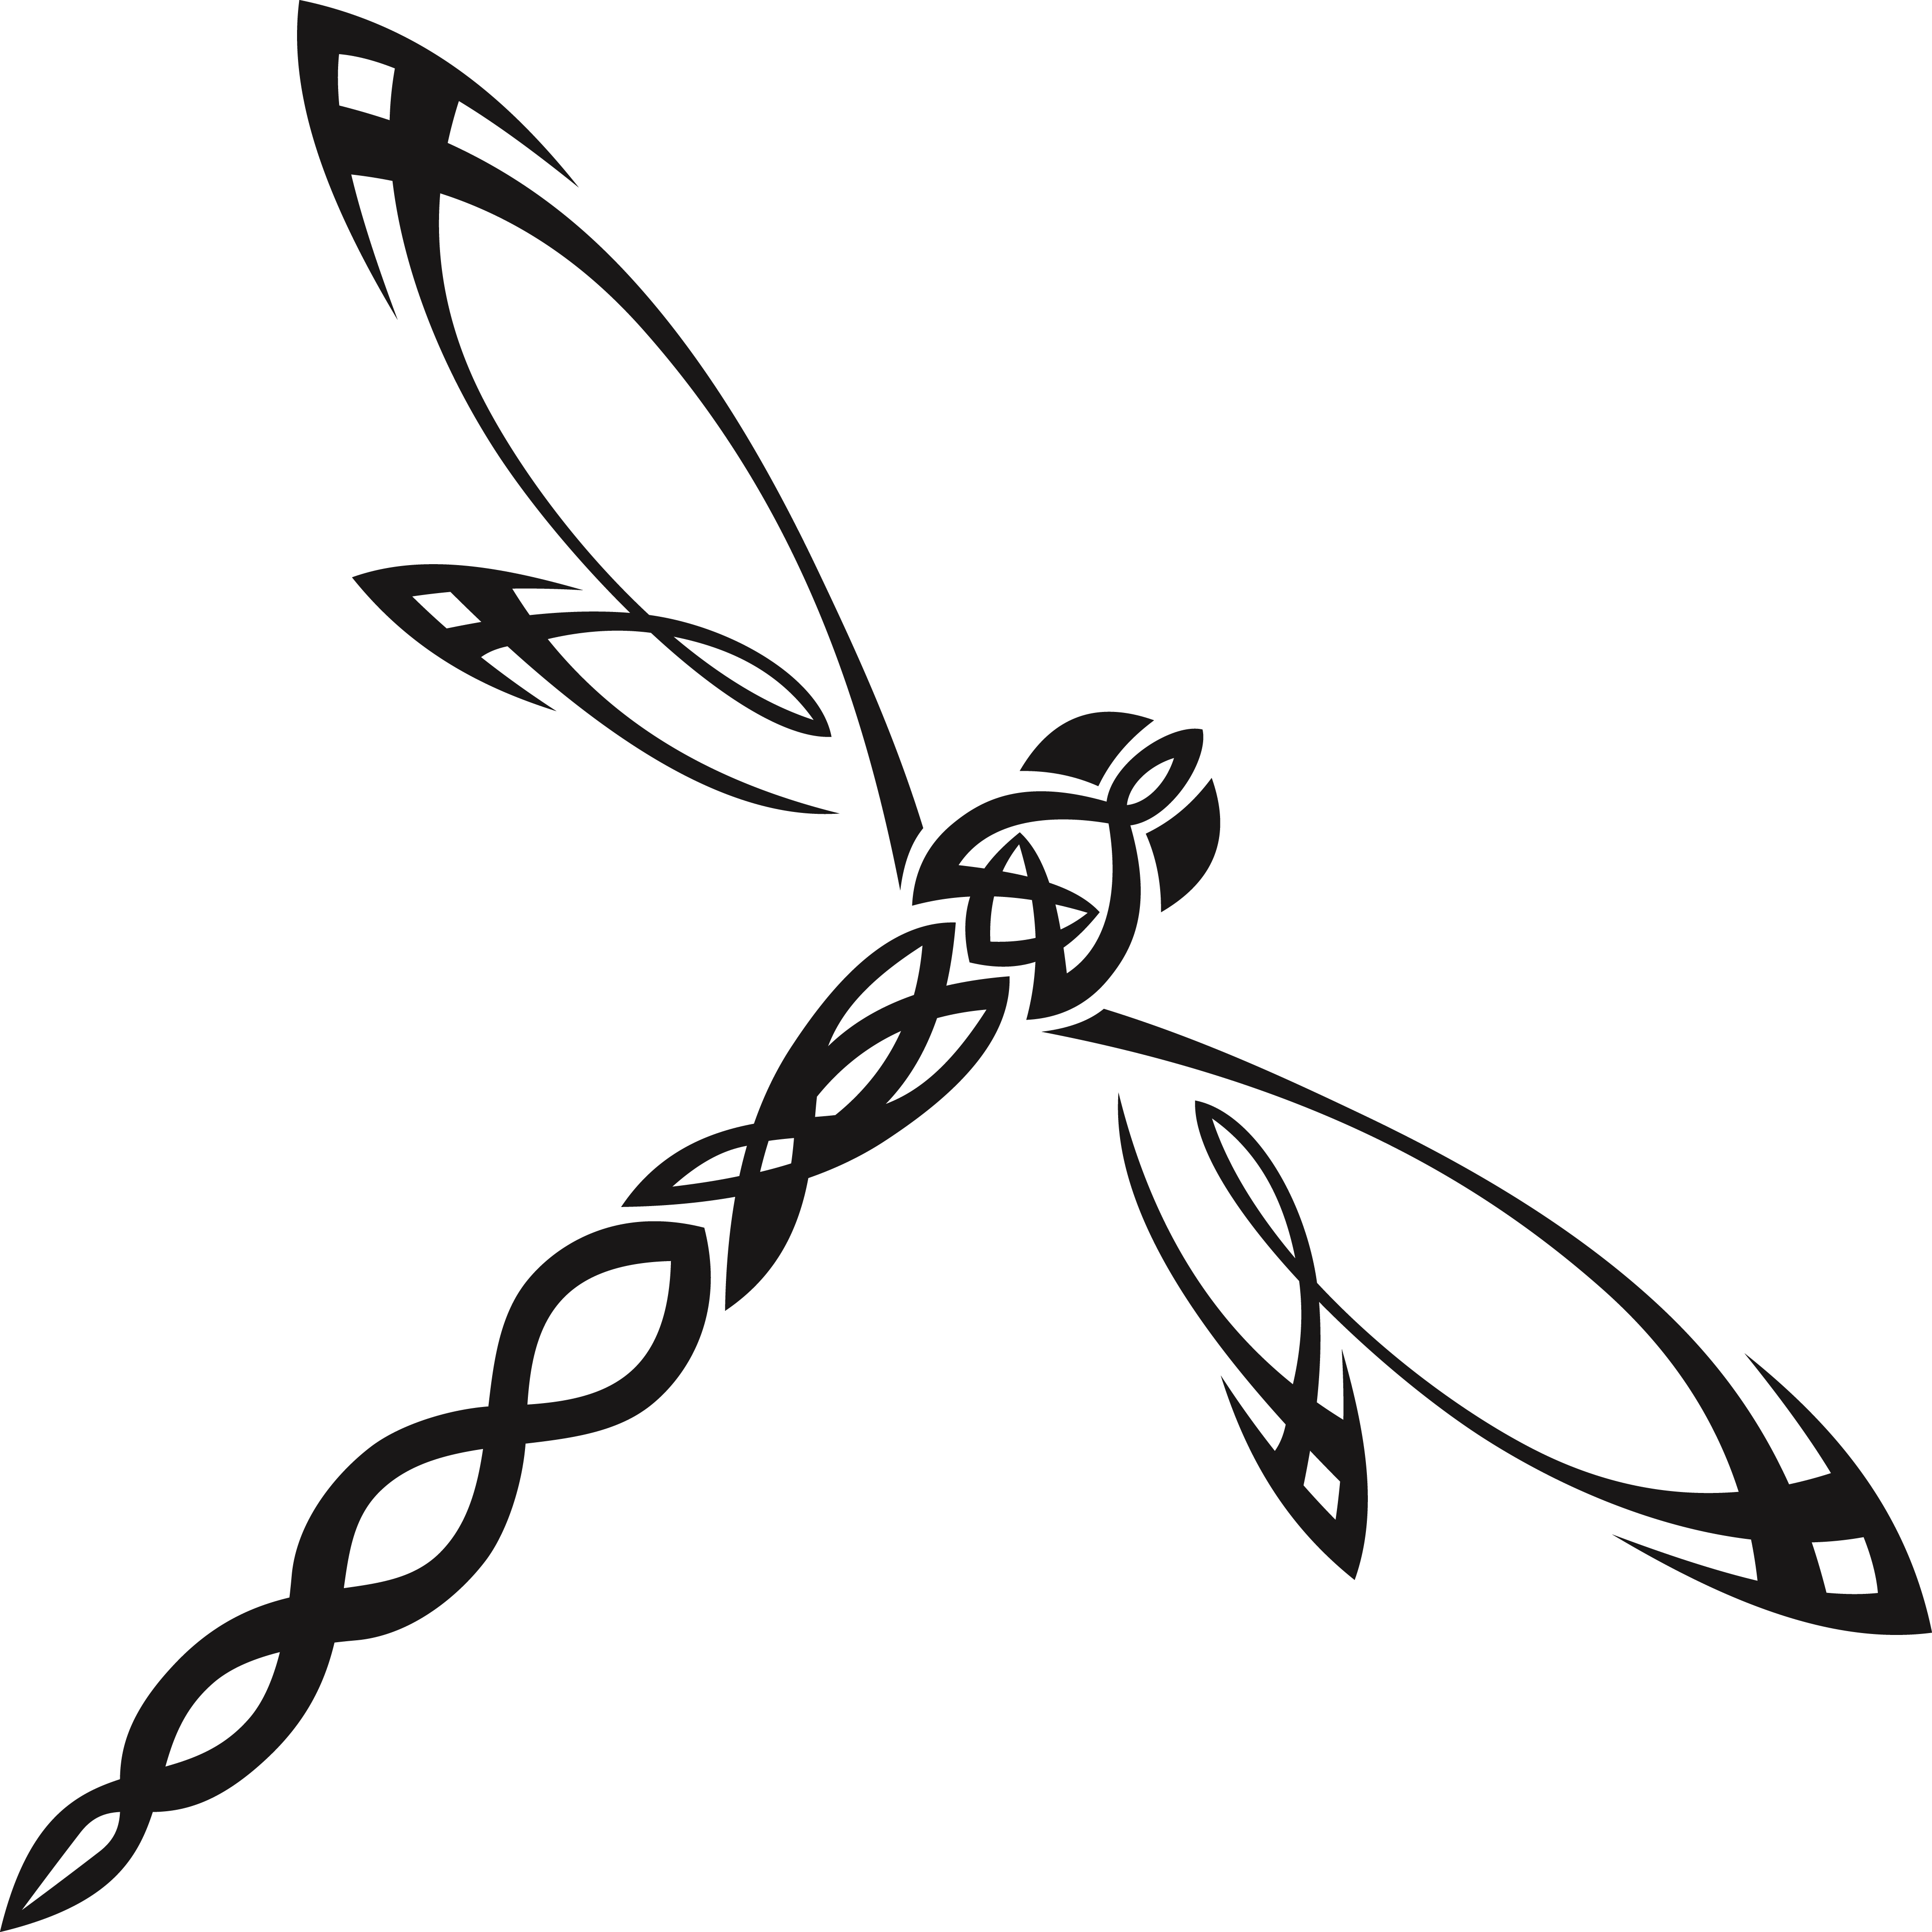 Free Clipart Of A tribal dragonfly #00011676 .